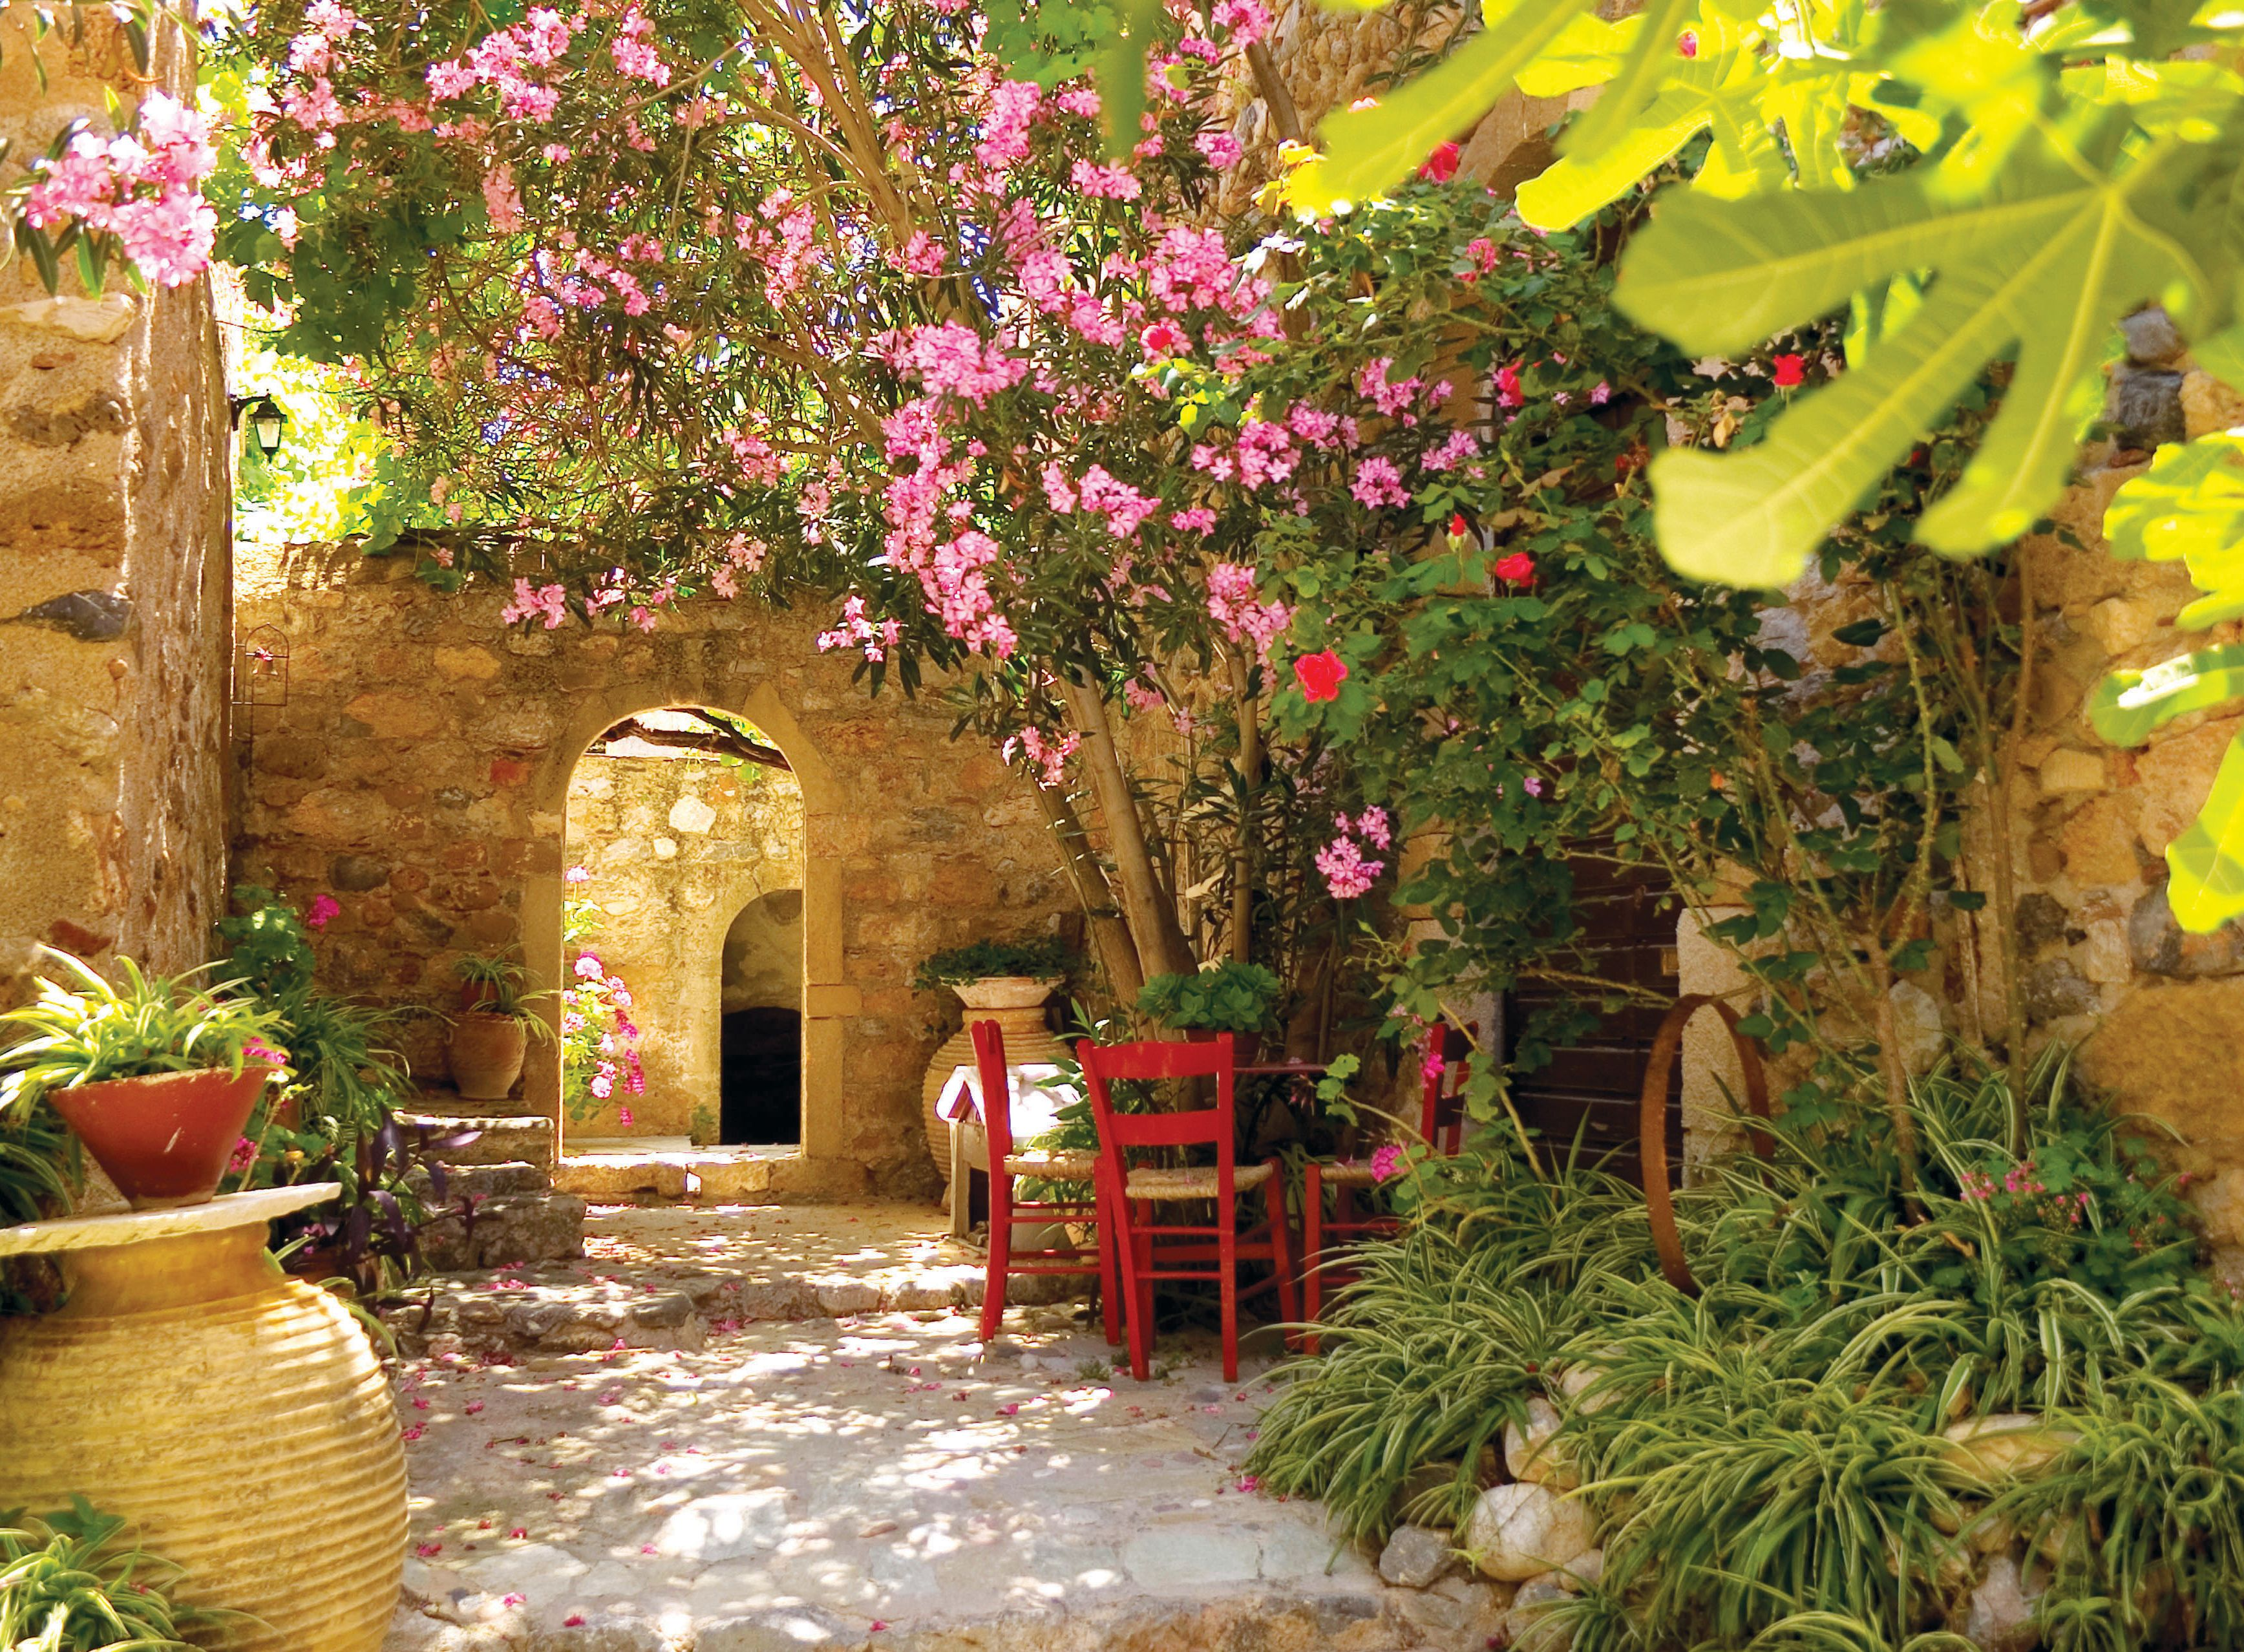 Mexican garden The Nerium Oleander plant grows abundantly in the Mediterranean